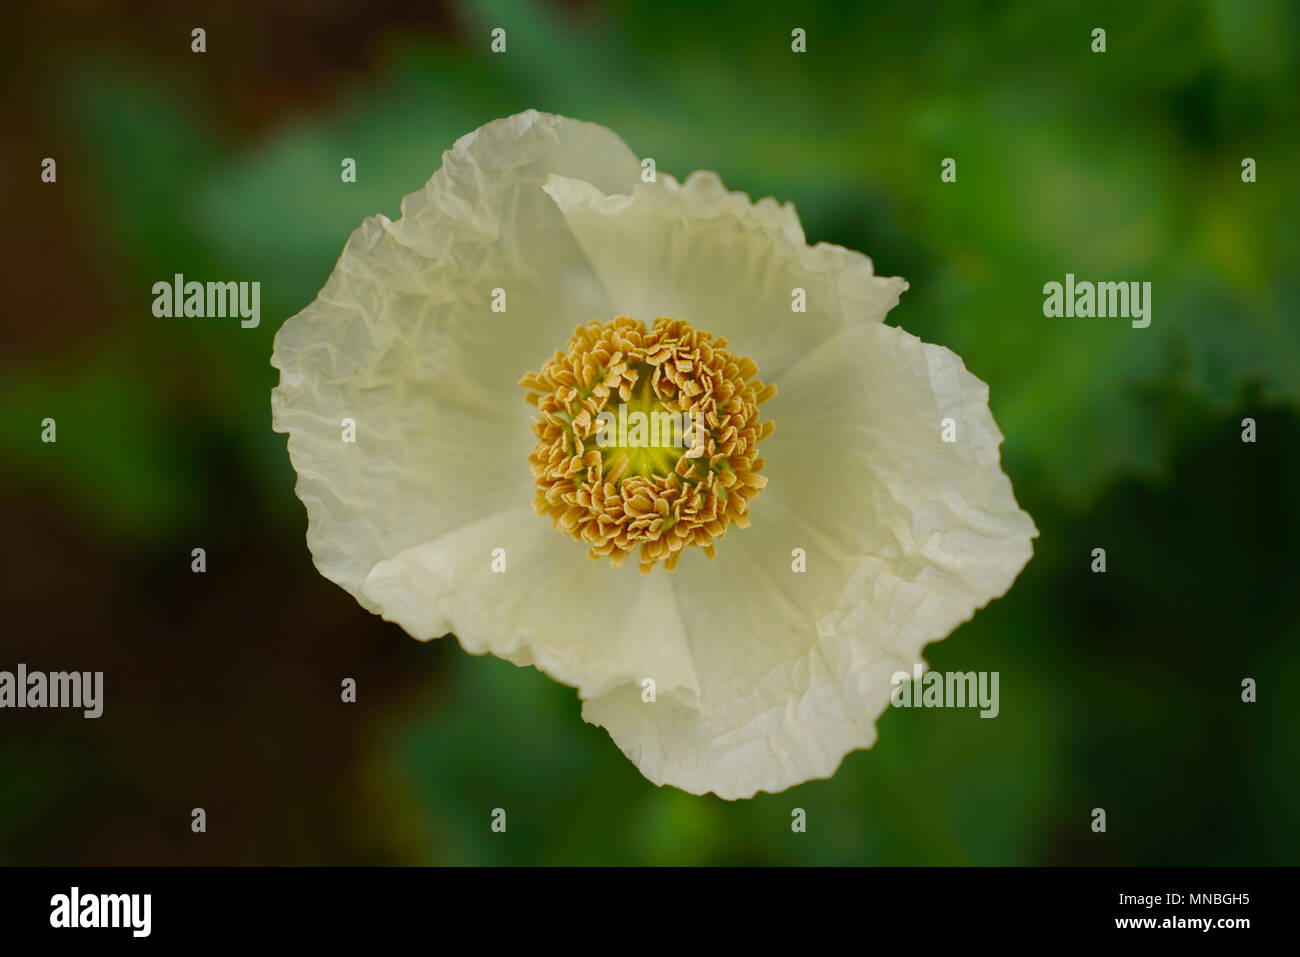 Close Up Inside Poppy Flower In White Petal Color Yellow Stamens And